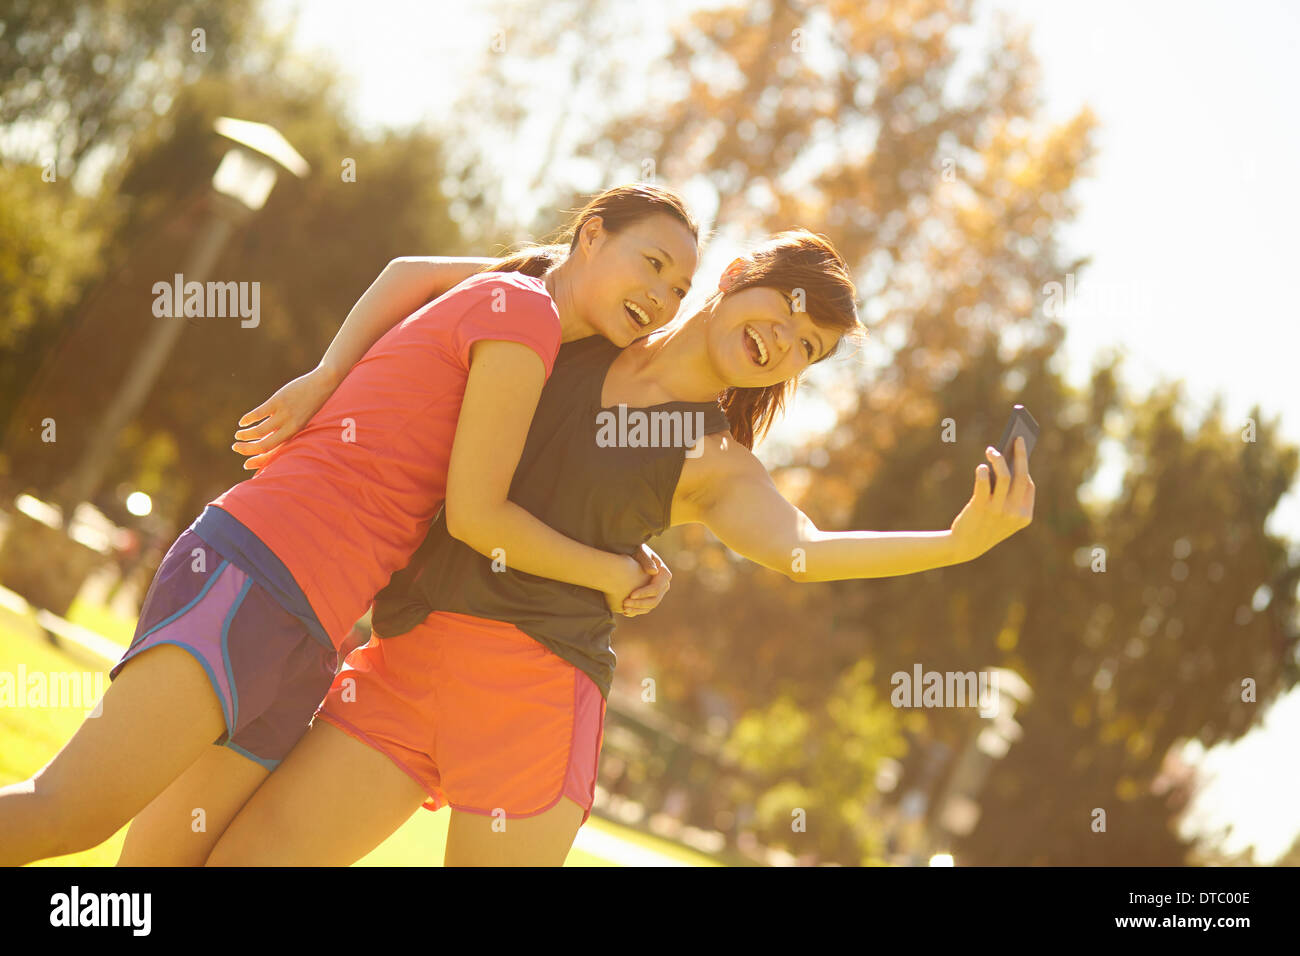 Two young women taking self portrait in park - Stock Image